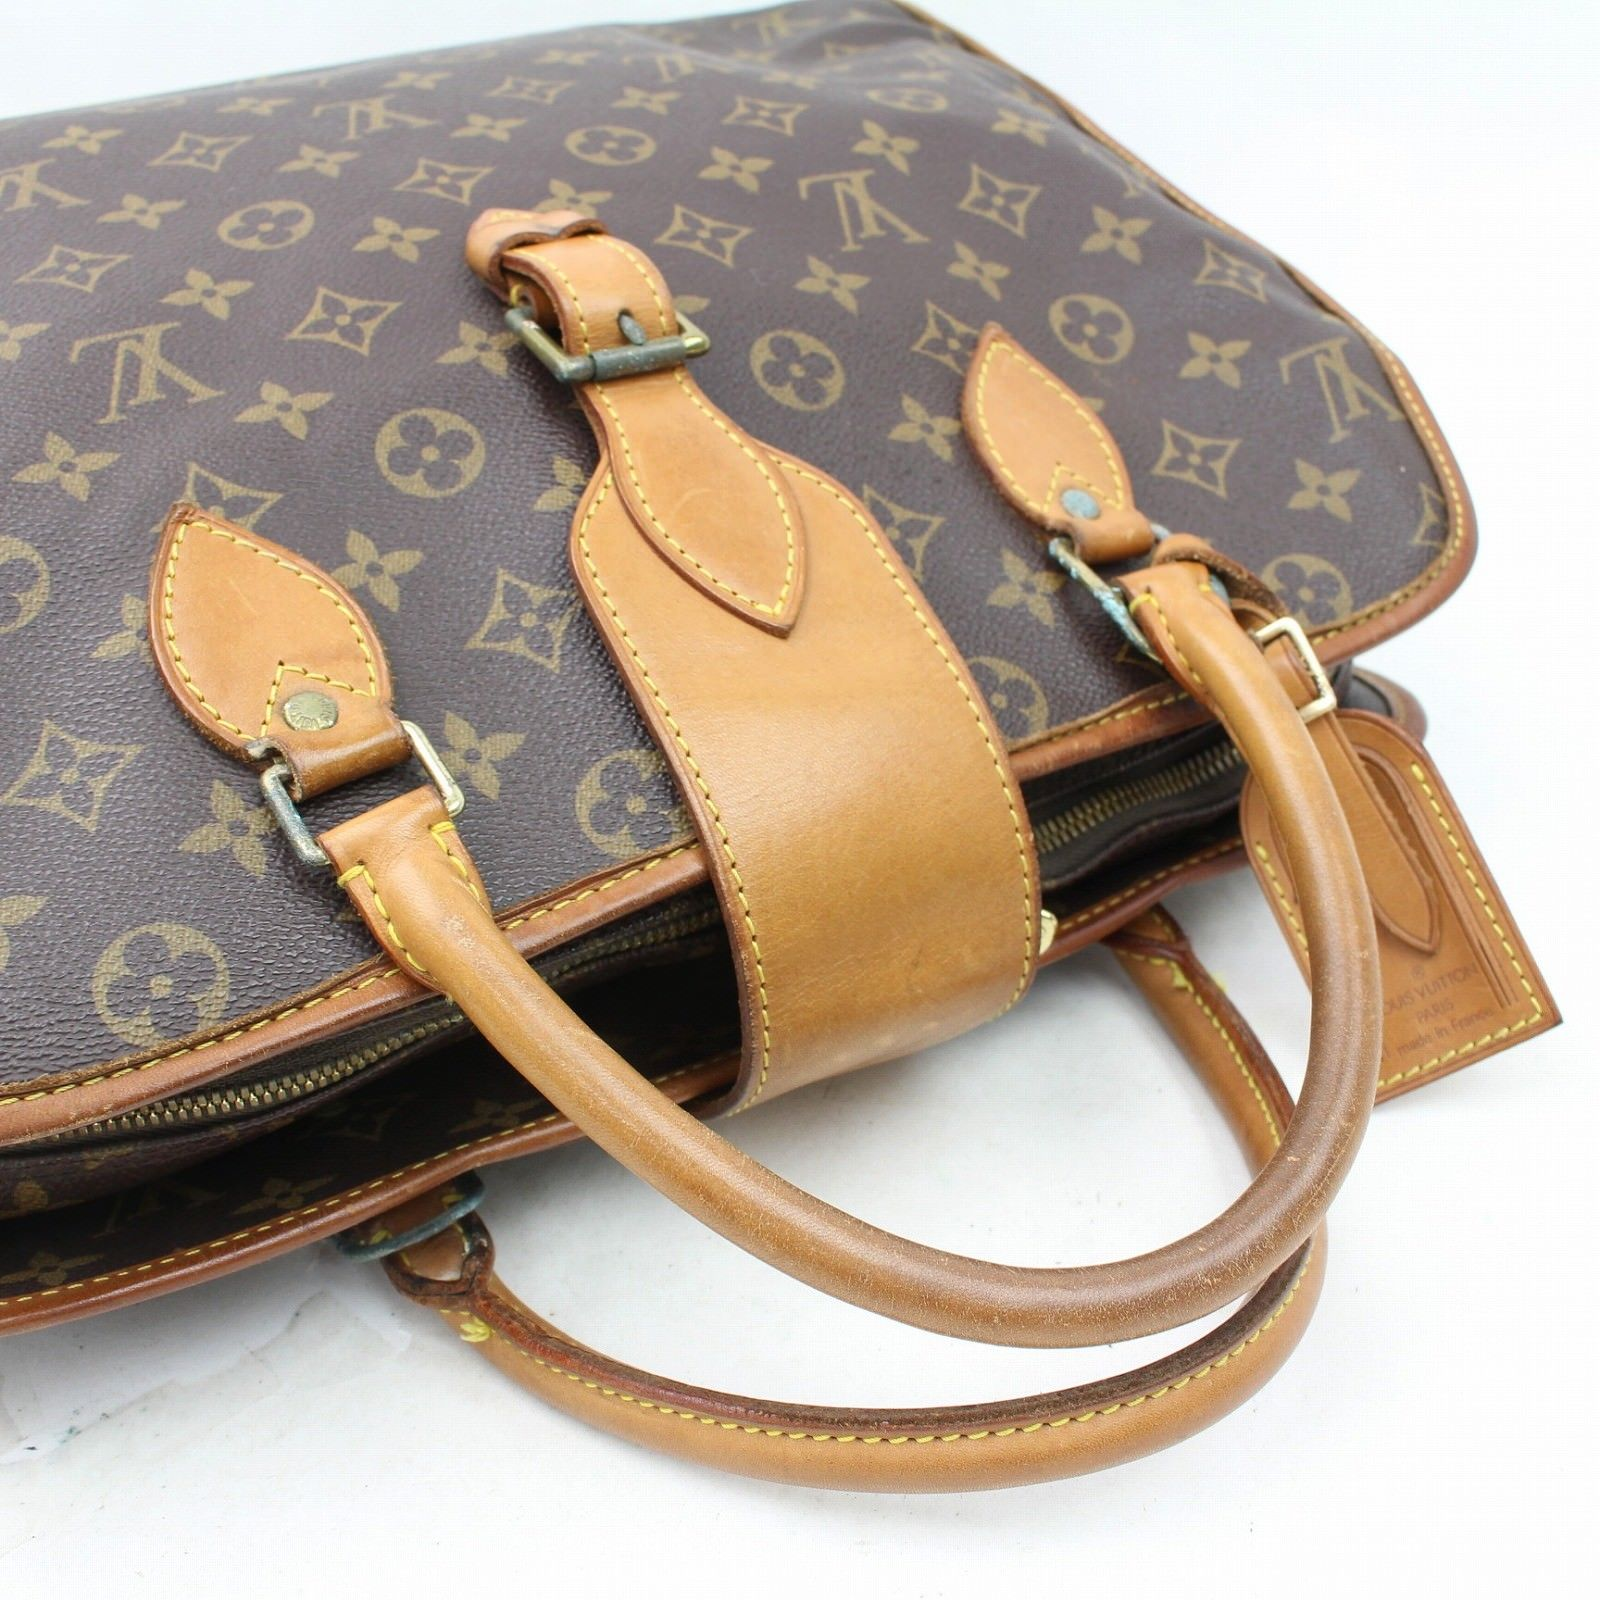 Louis Vuitton Rivoli M53380 Brown Monogram Business Bag  10895